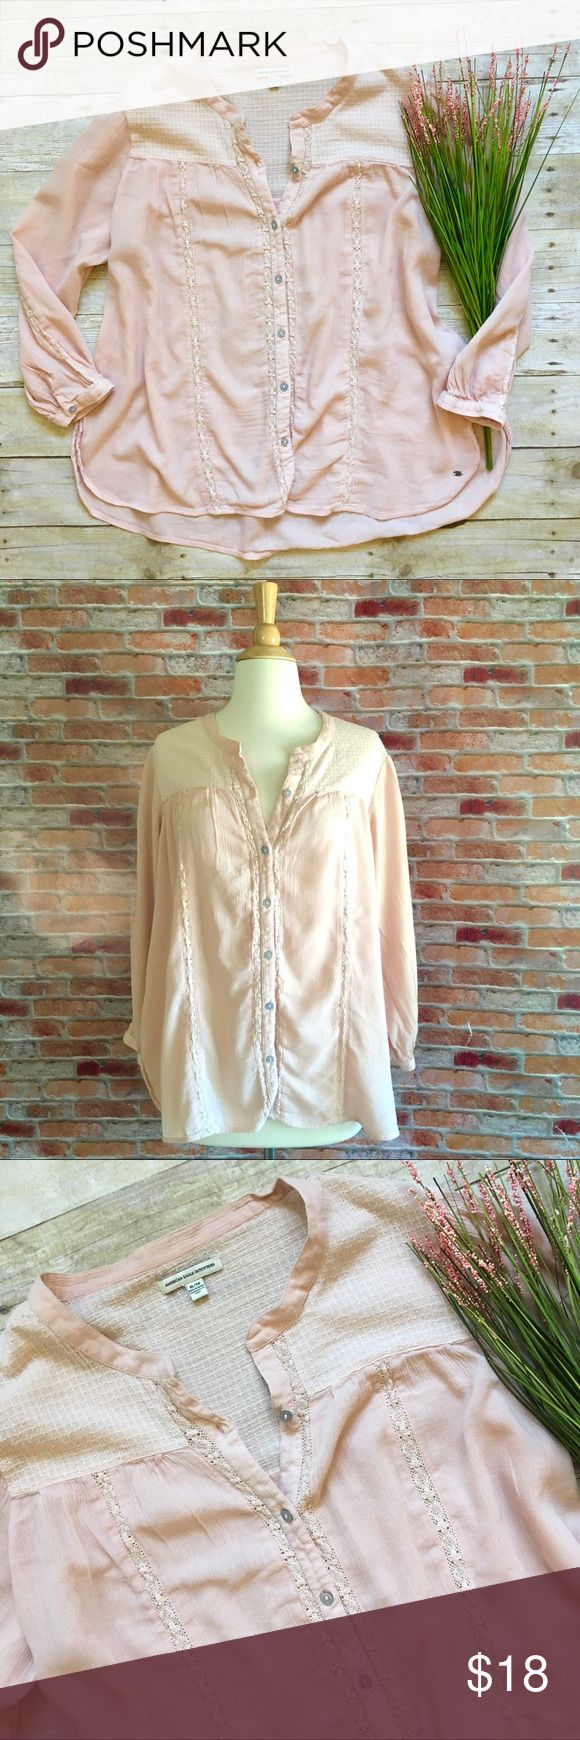 """American Eagle ballet pink button front gauze top Button front gauzy peasant top with lace stripes. In excellent condition. 55/45 cotton, viscose. 25""""L. 24"""" bust laying flat. Size XL. American Eagle Outfitters Tops"""